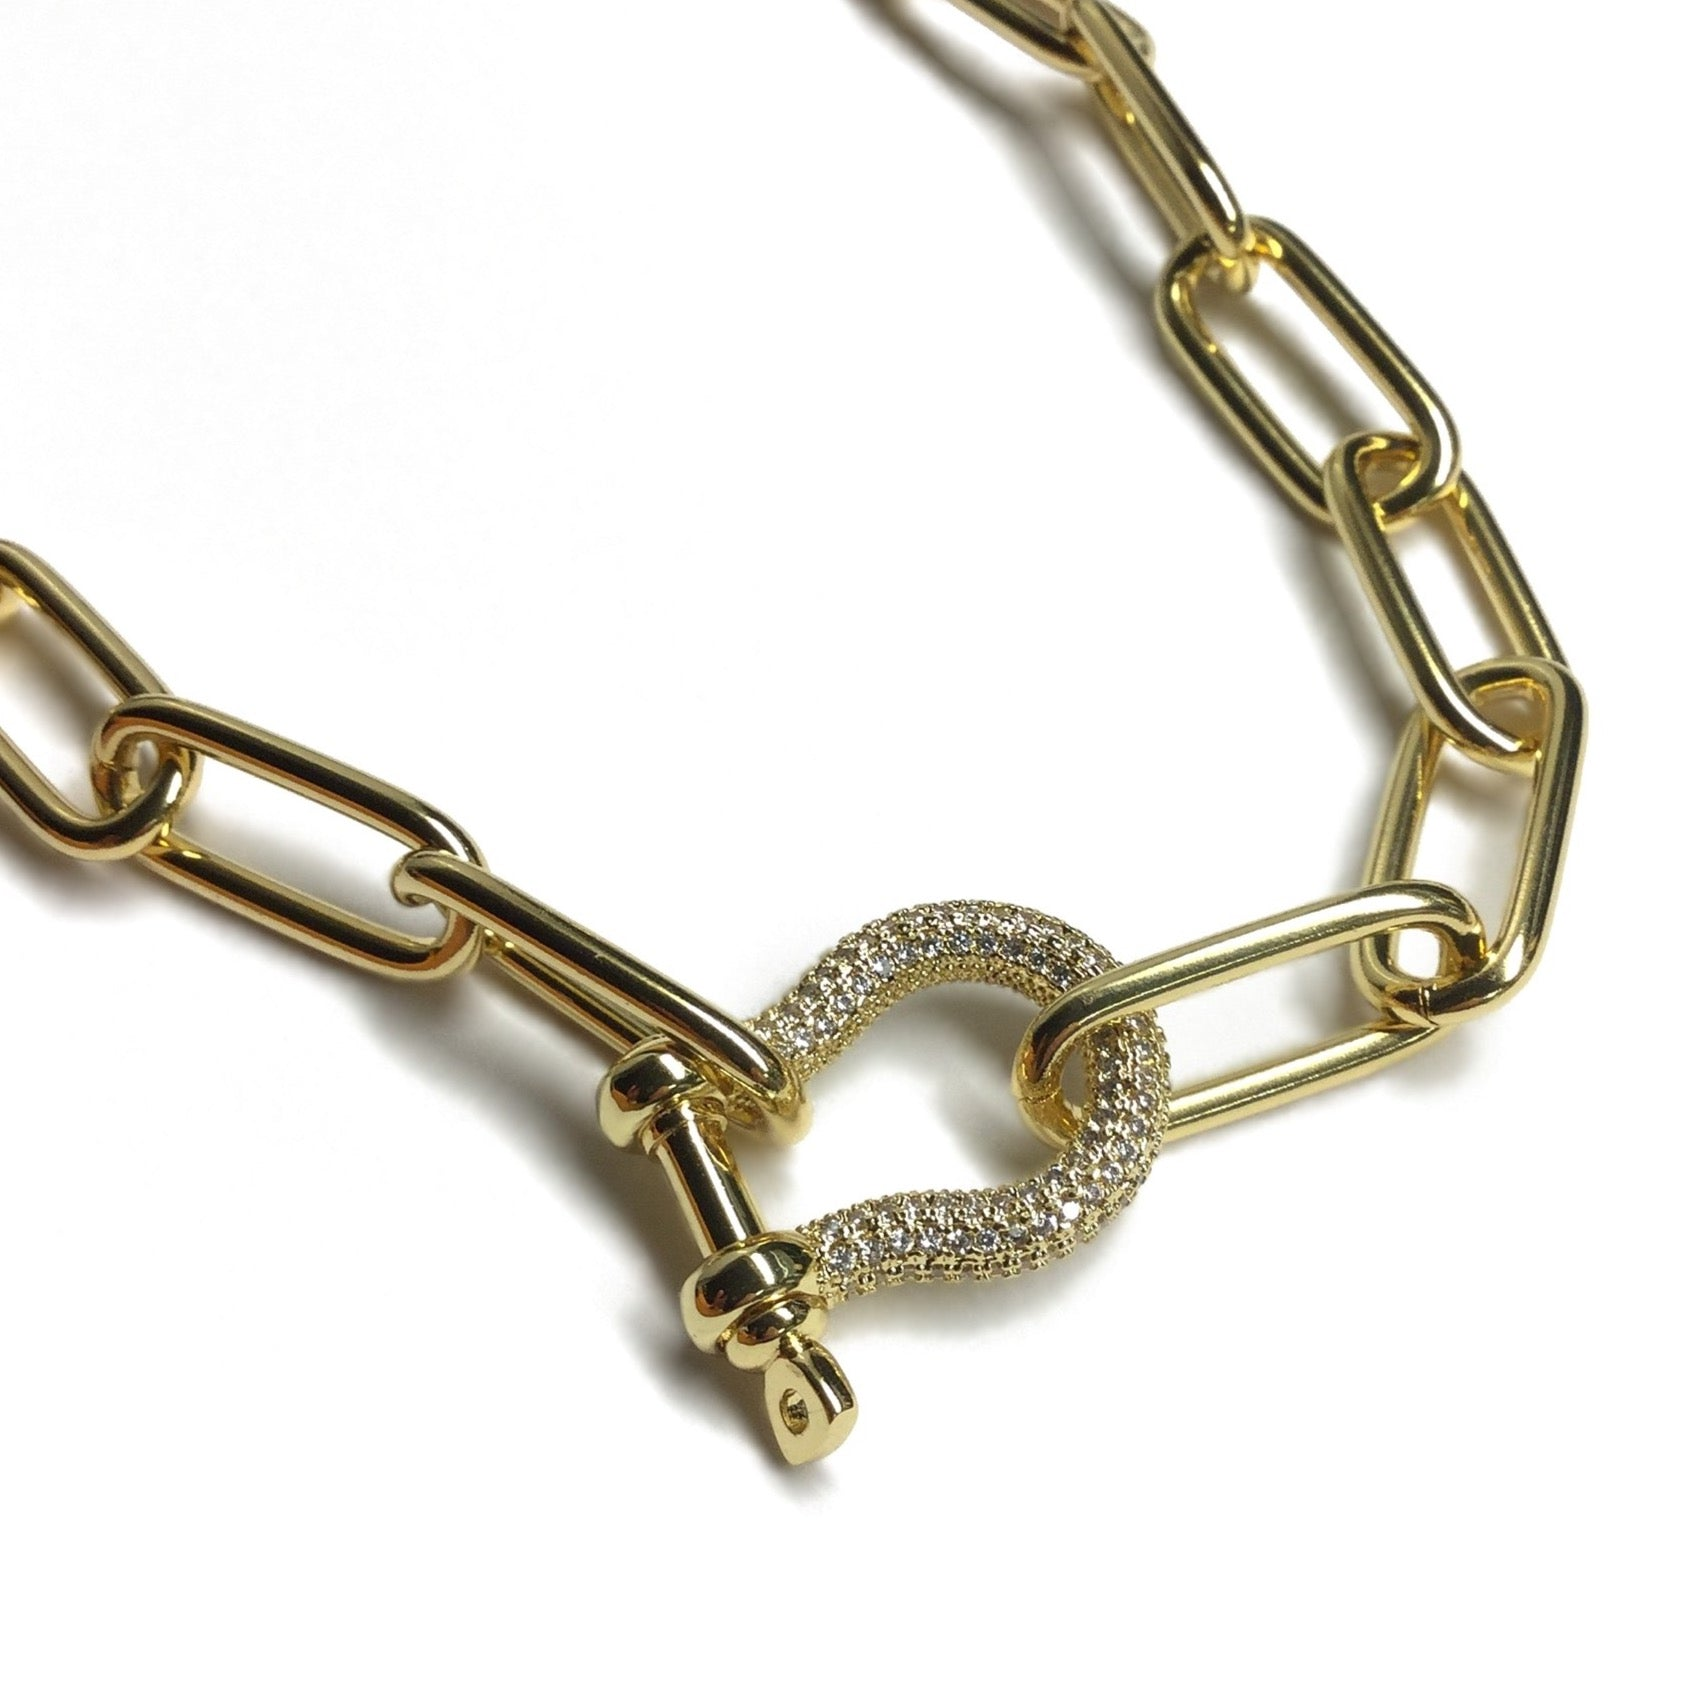 carabiner paperclip necklace